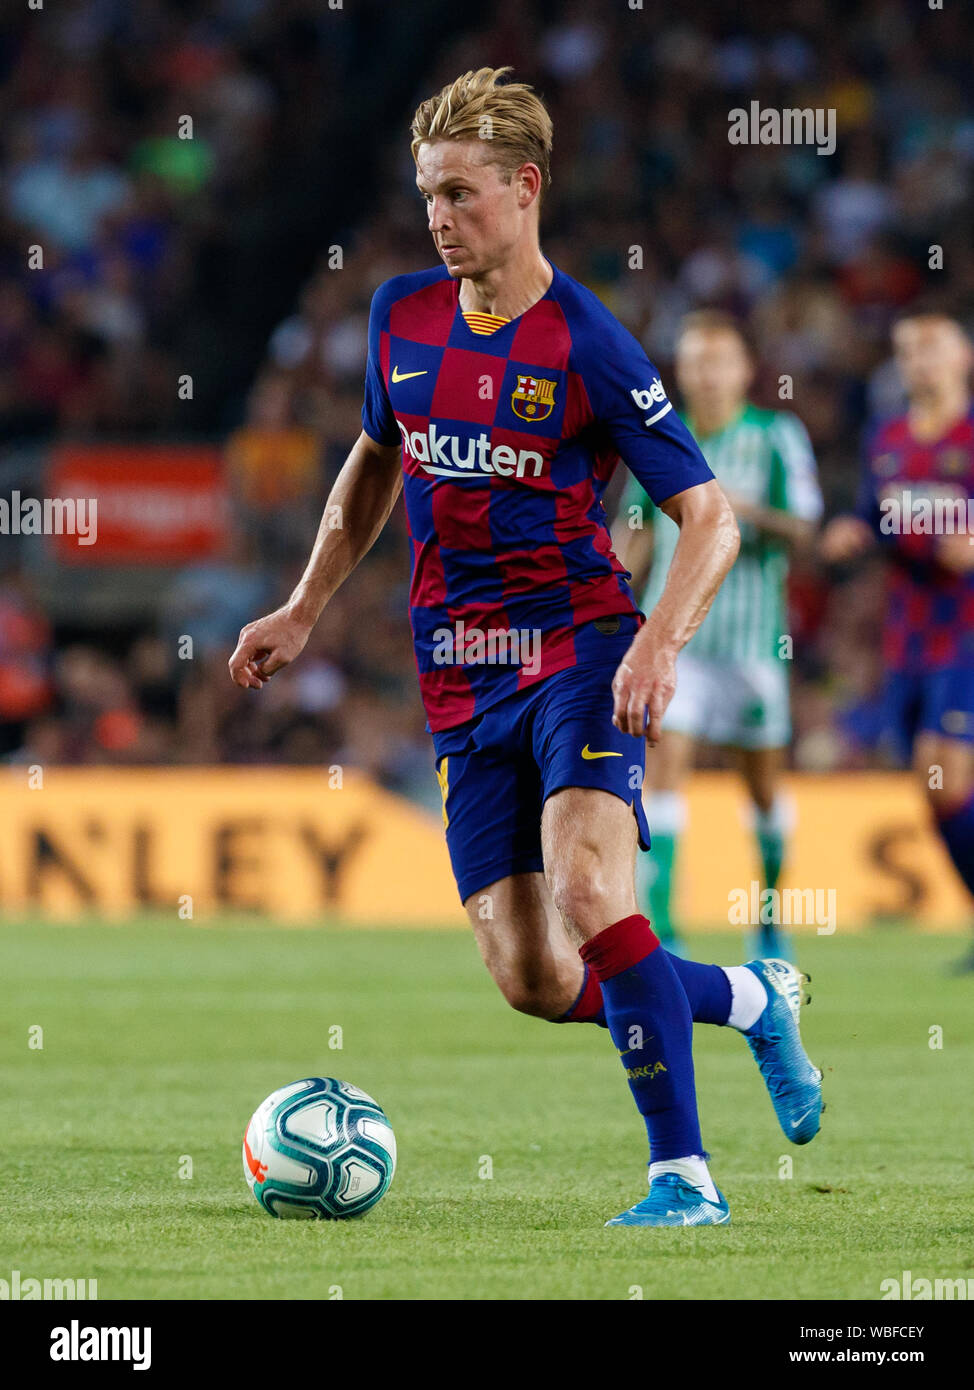 Barcelona Spain 25th Aug 2019 Barcelona Spain August 25 Frenkie De Jong Of Fc Barcelona In Action During The Liga Match Between Fc Barcelona And Real Betis At Camp Nou On